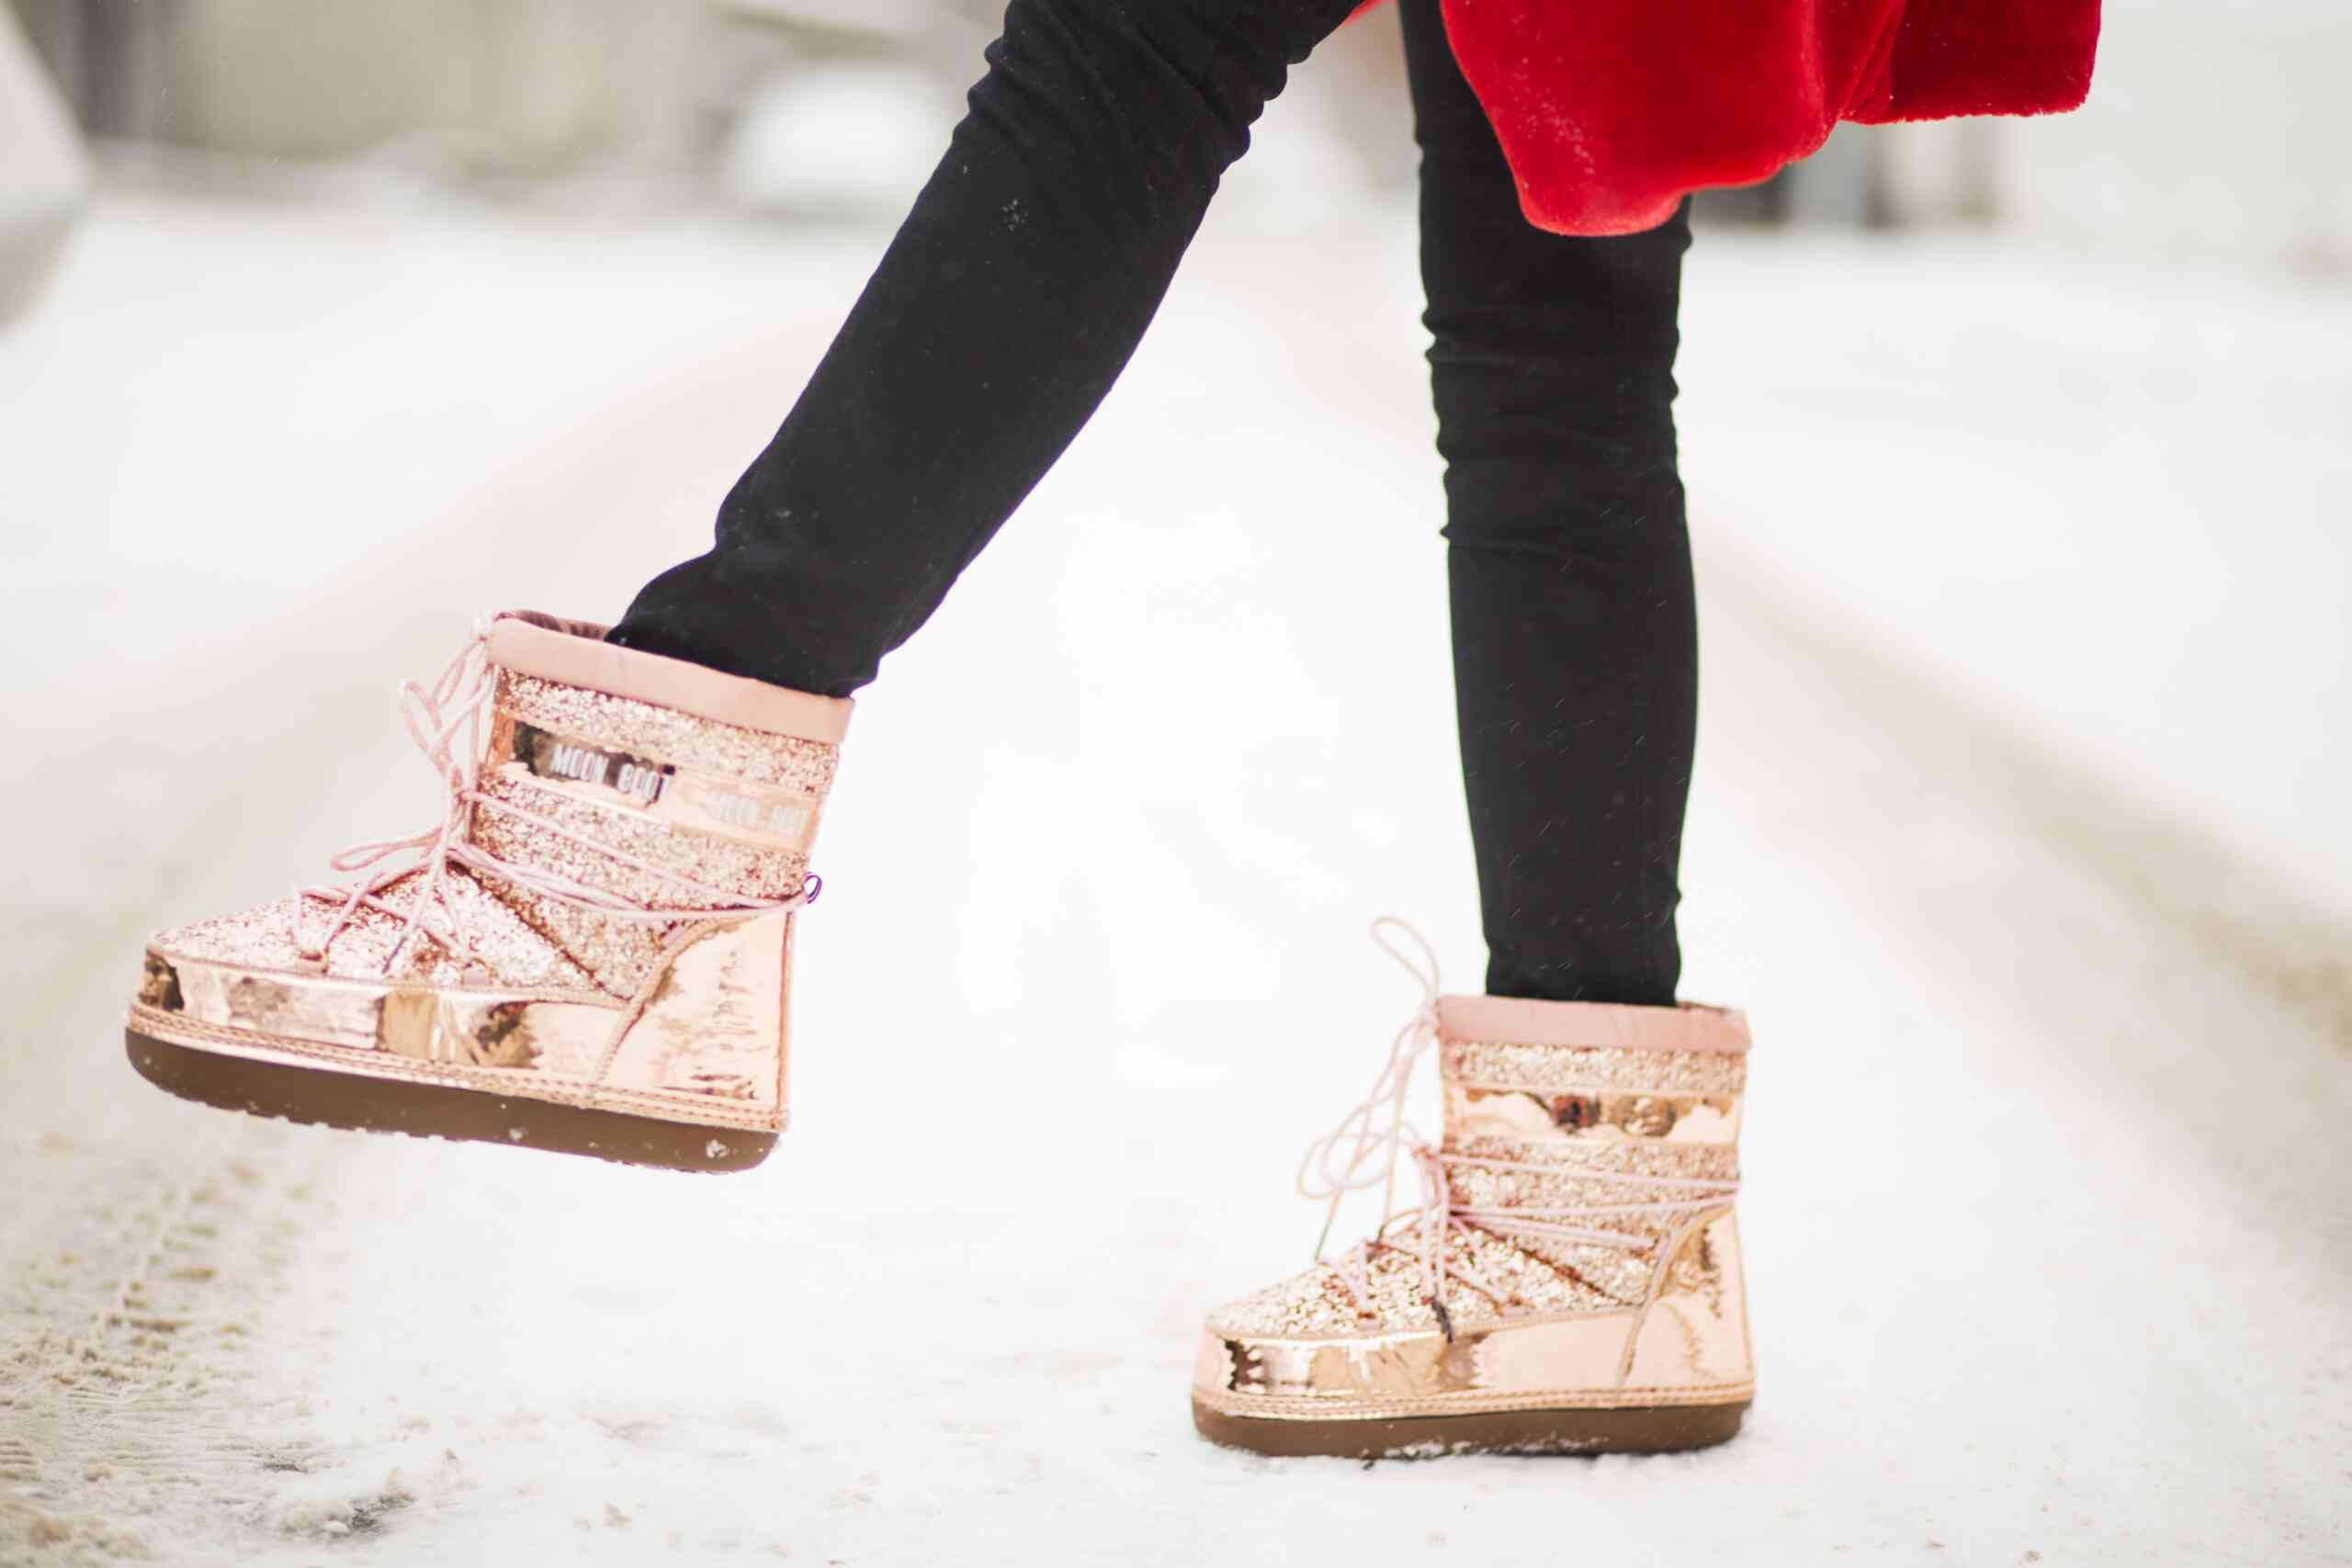 Women Fleece-Lined Boots For All Conditions